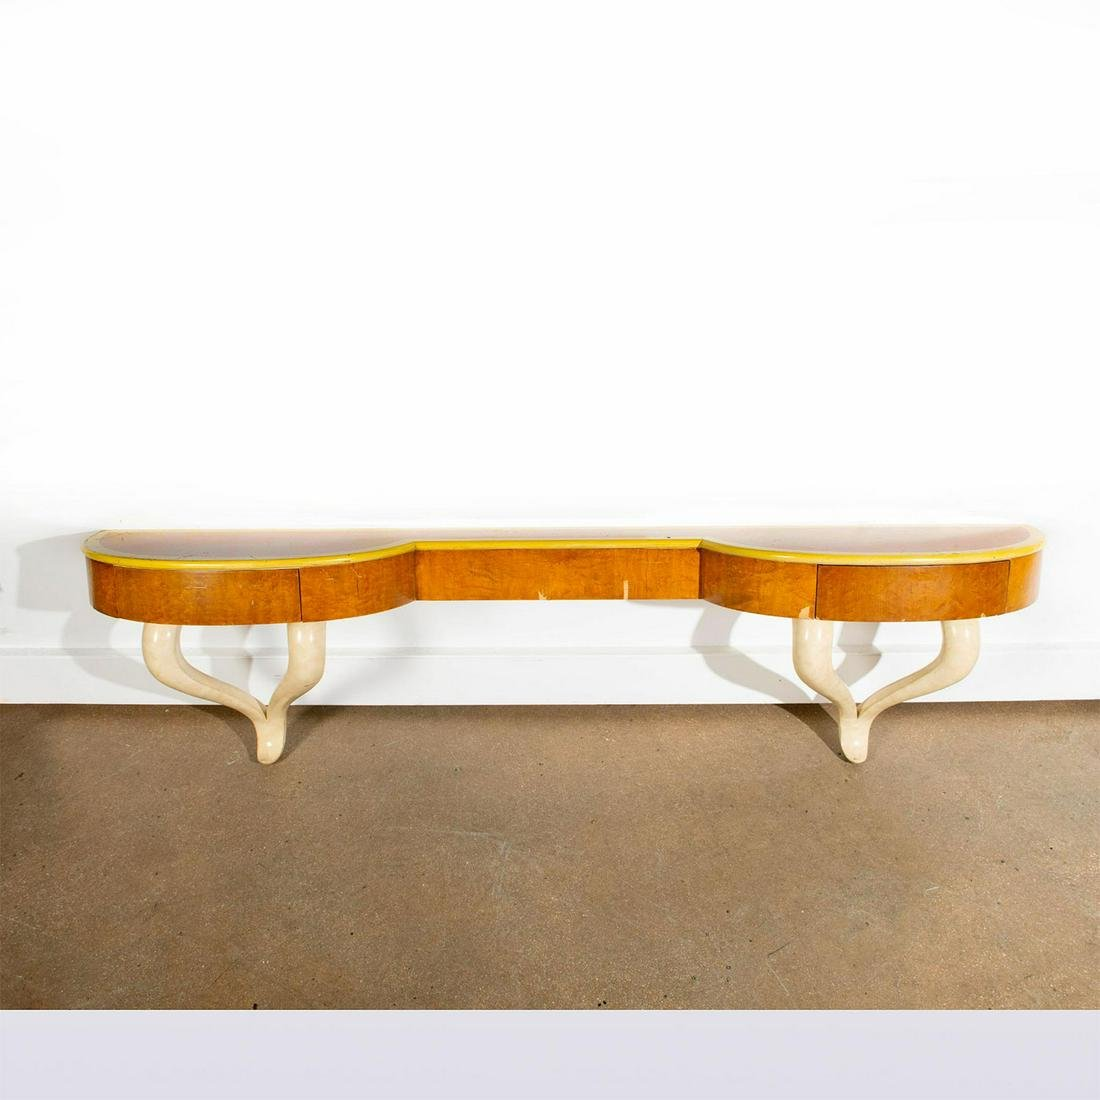 MID CENTURY MODERN WALL MOUNTED CONSOLE TABLE